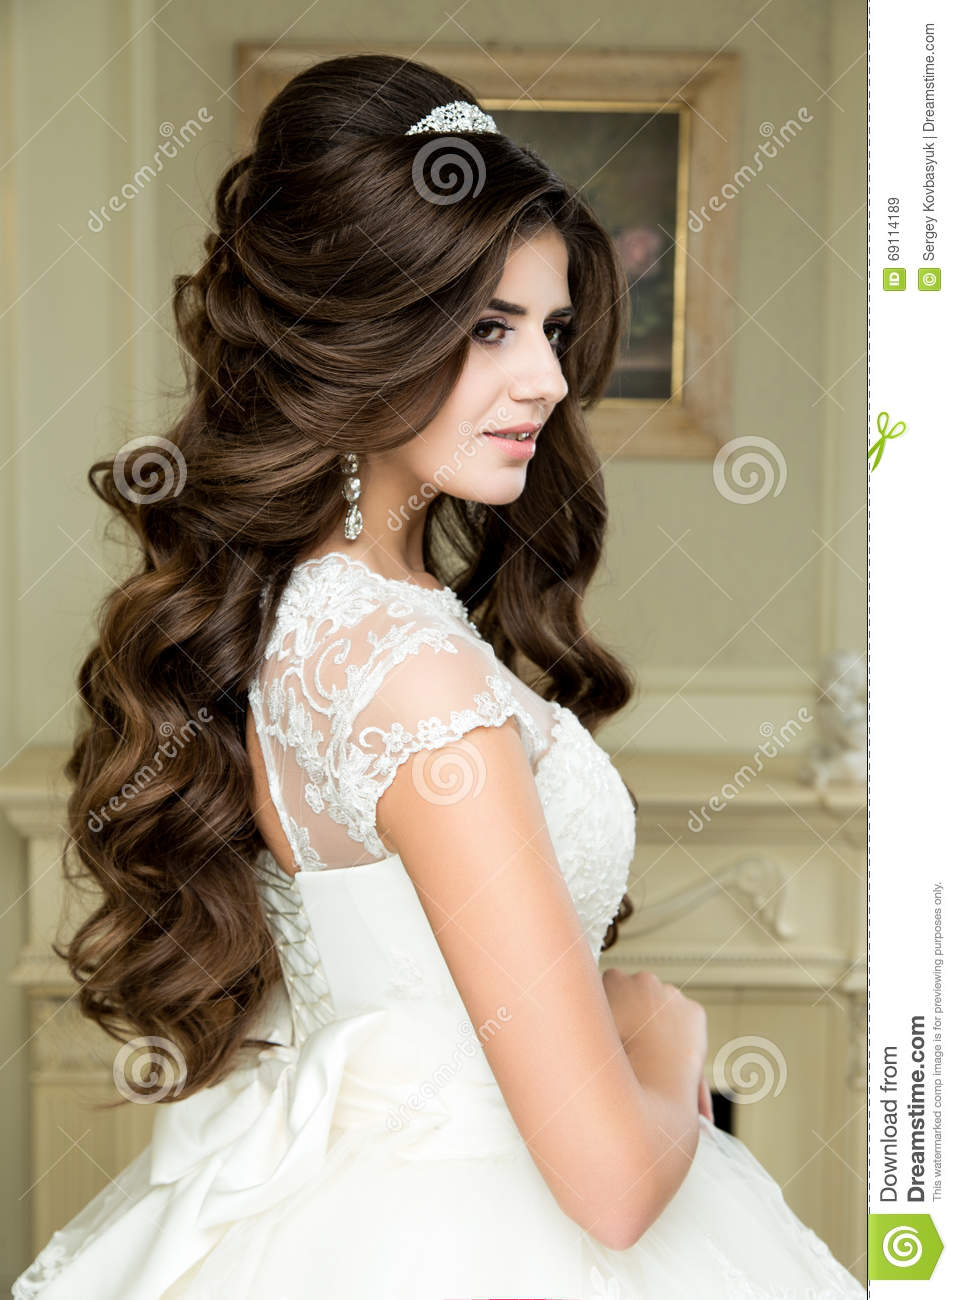 wedding makeup and hairstyle with diamond crown, fashion bride model ...